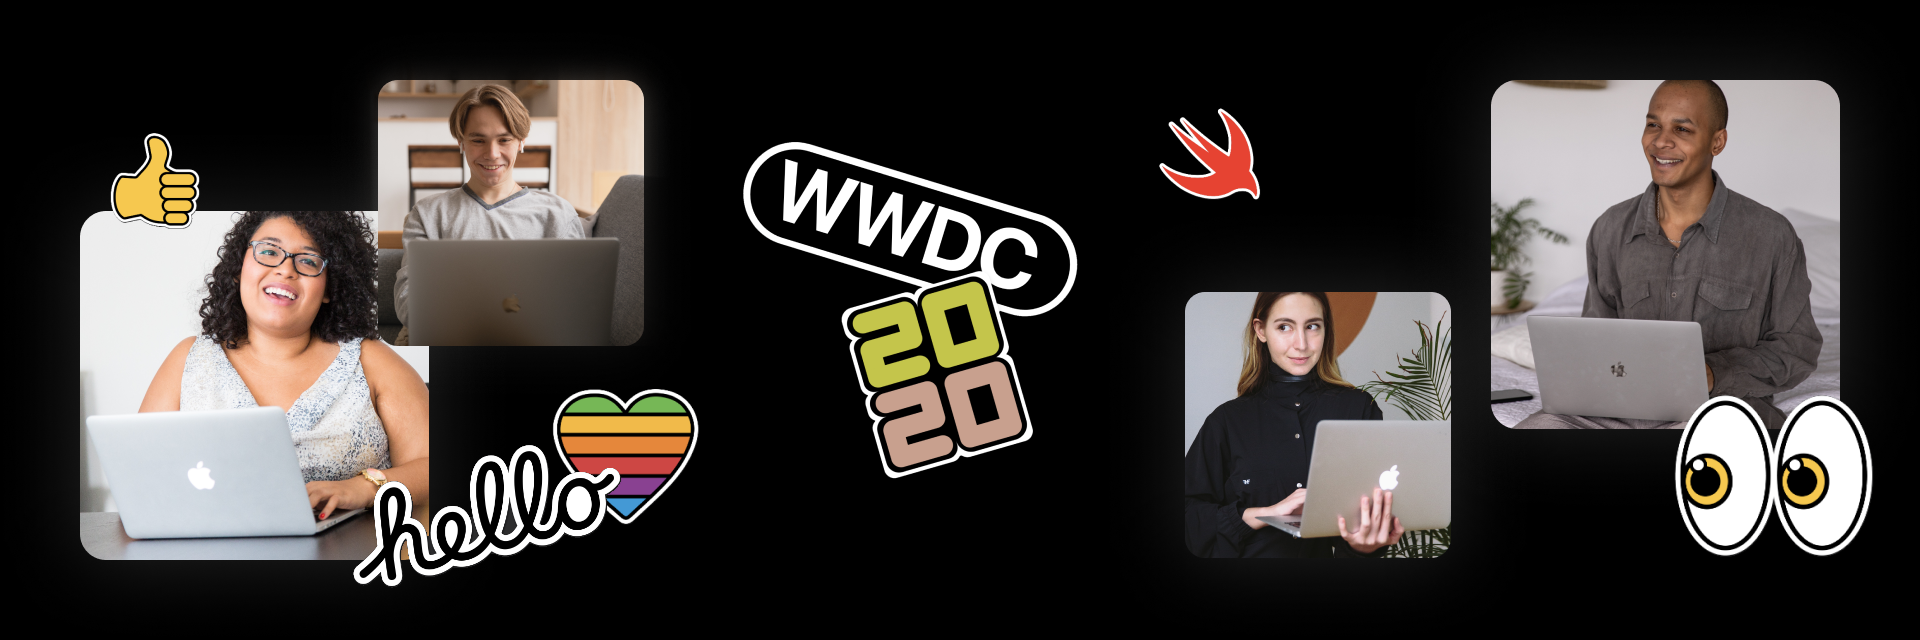 Top 5 Virtual Events To Catch Up On Wwdc 2020